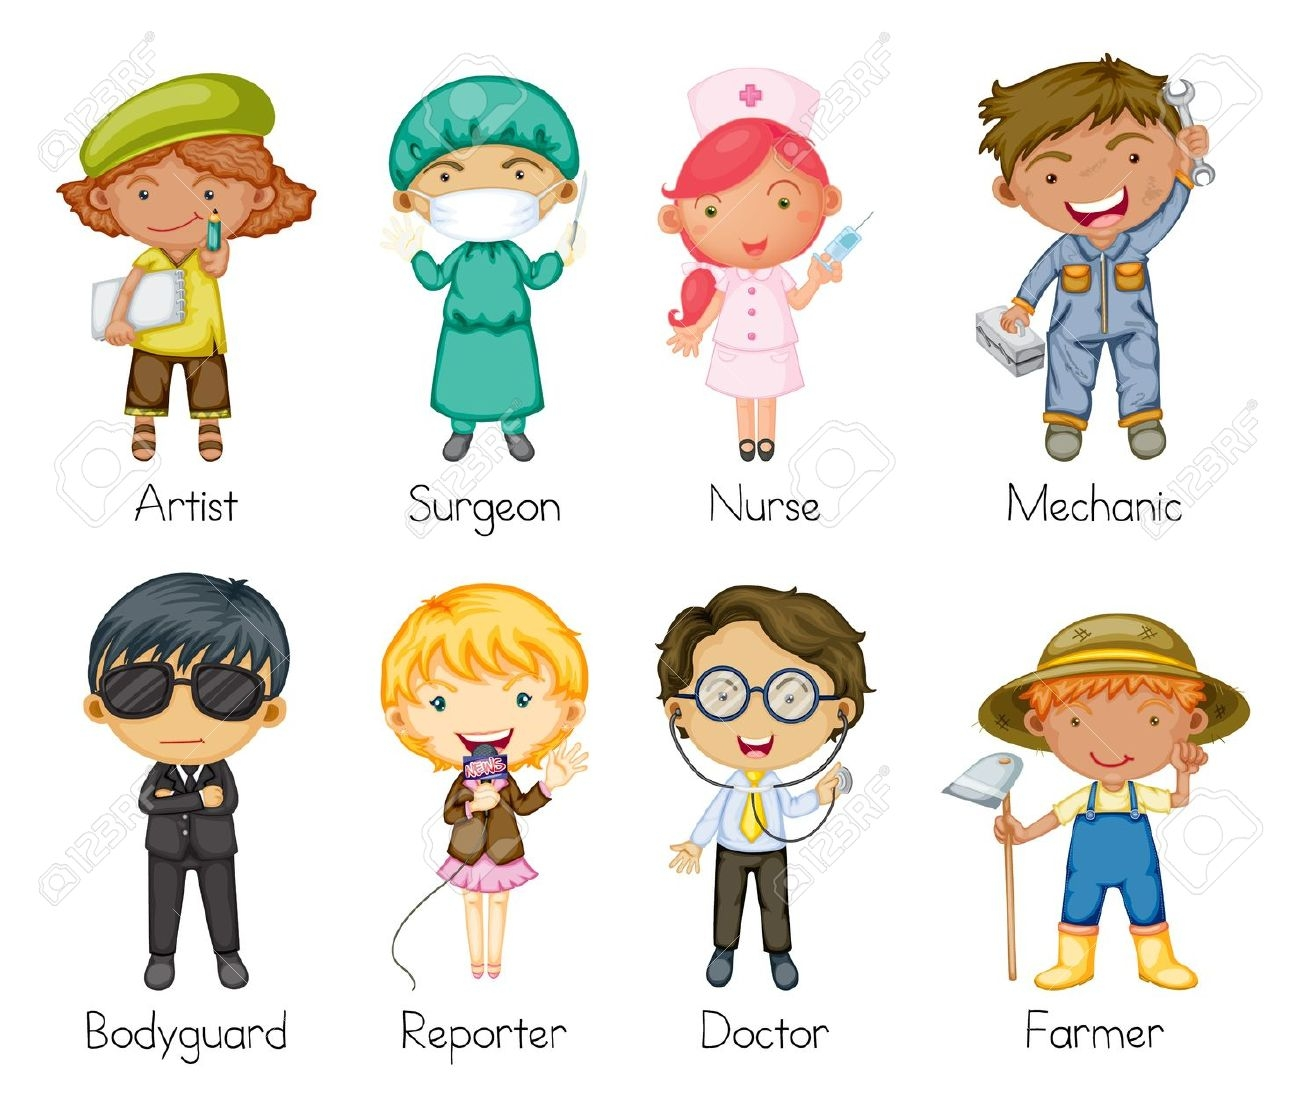 Clipart For Job 20 Free Cliparts